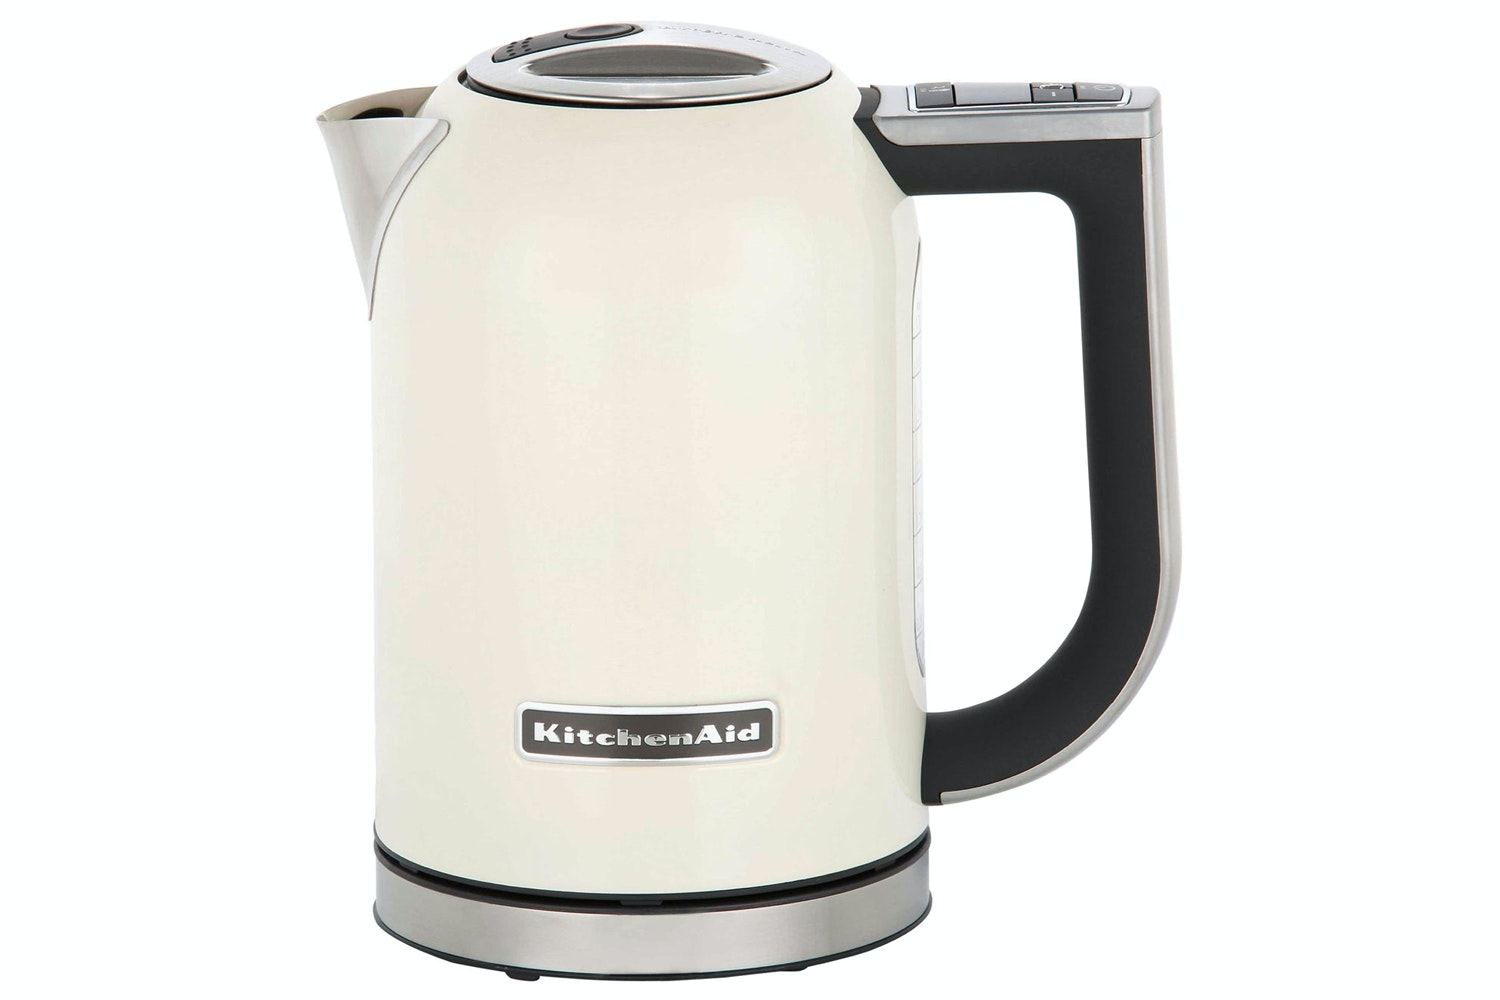 KitchenAid 1.7 L Kettle | 5KEK1722BAC